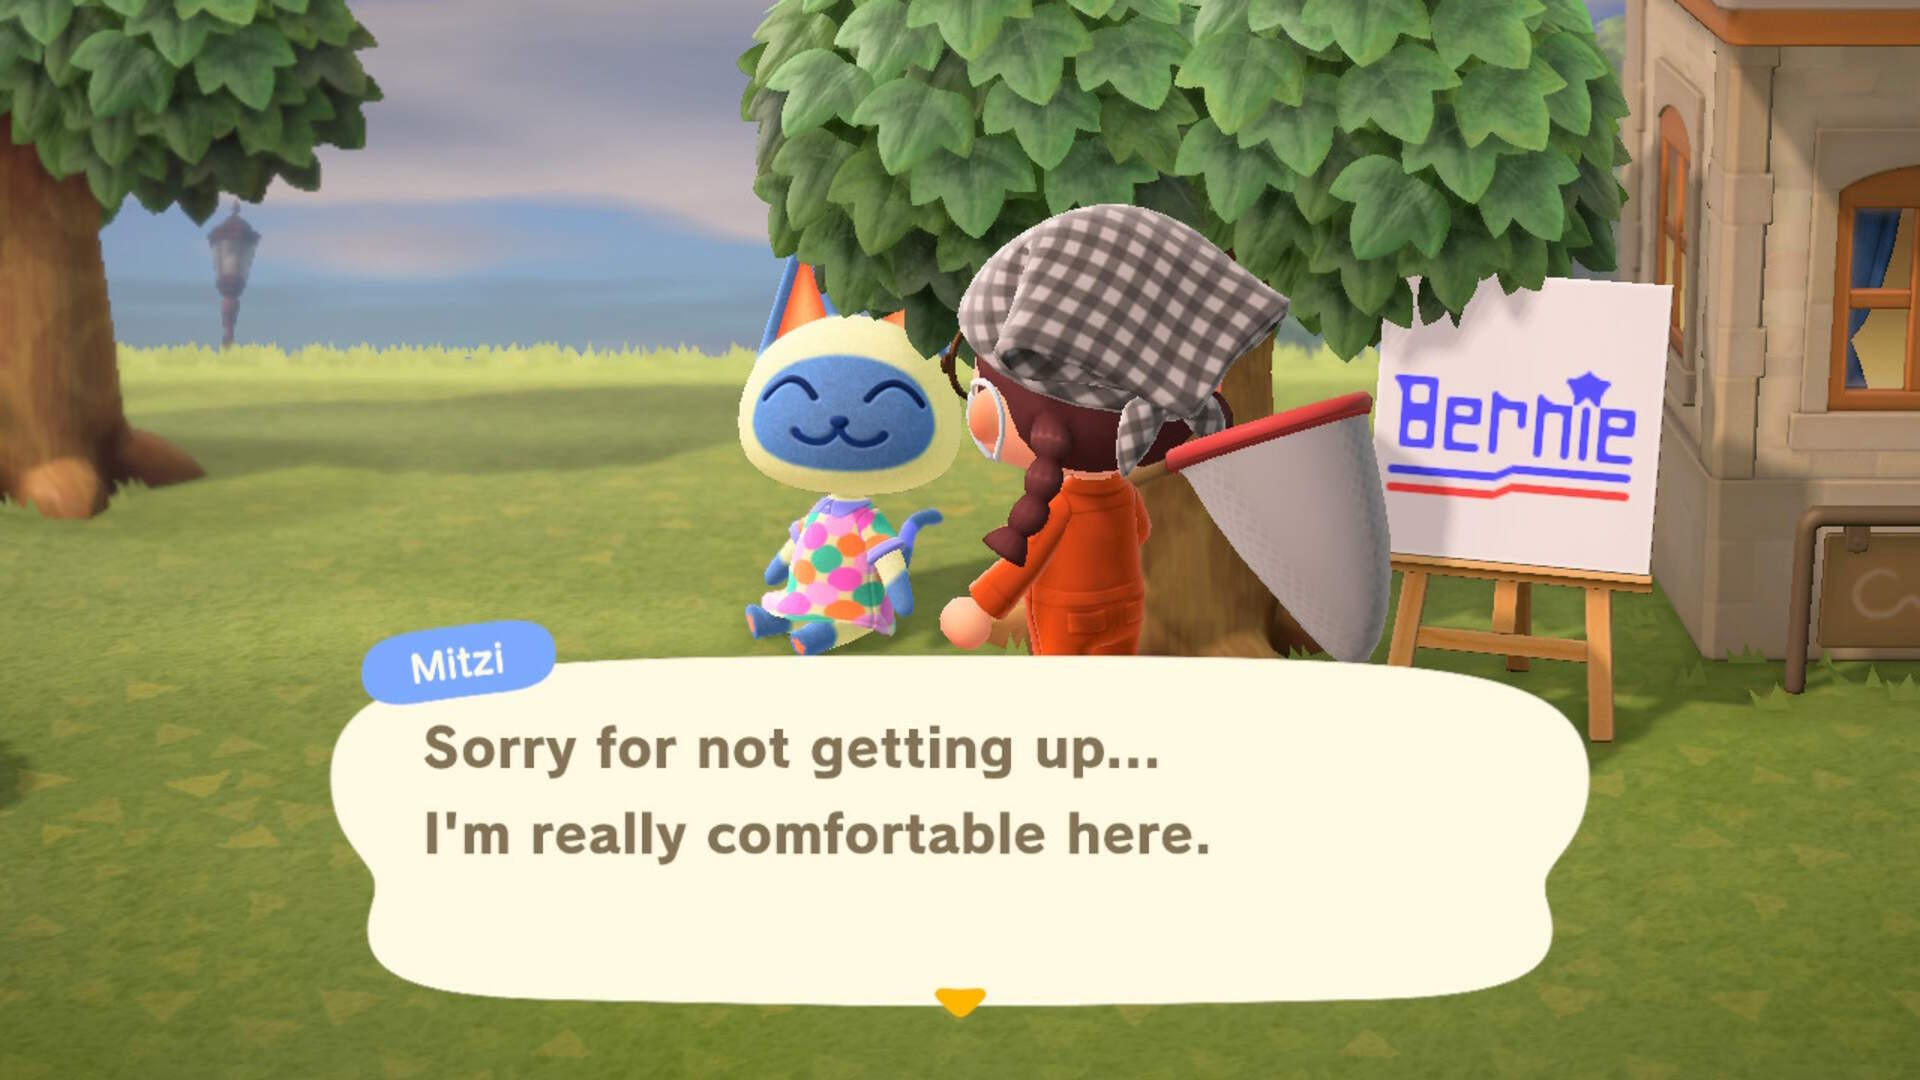 Nintendo Asks Brands to Keep Politics and Money Out of Animal Crossing: New Horizons